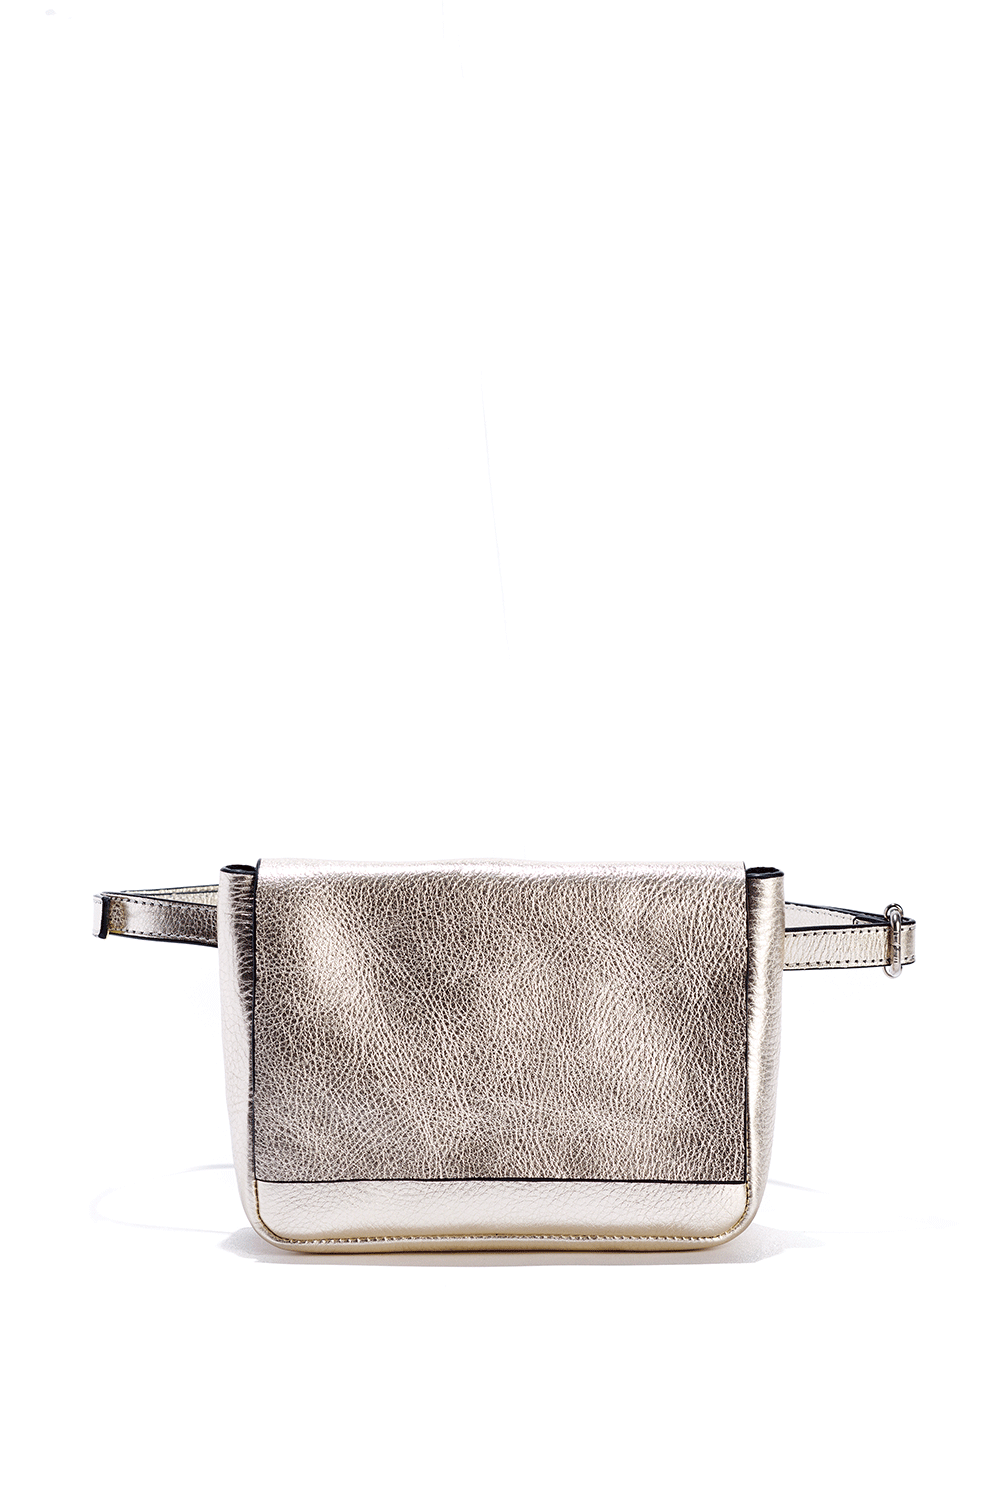 Inbar Harari Belt Bag